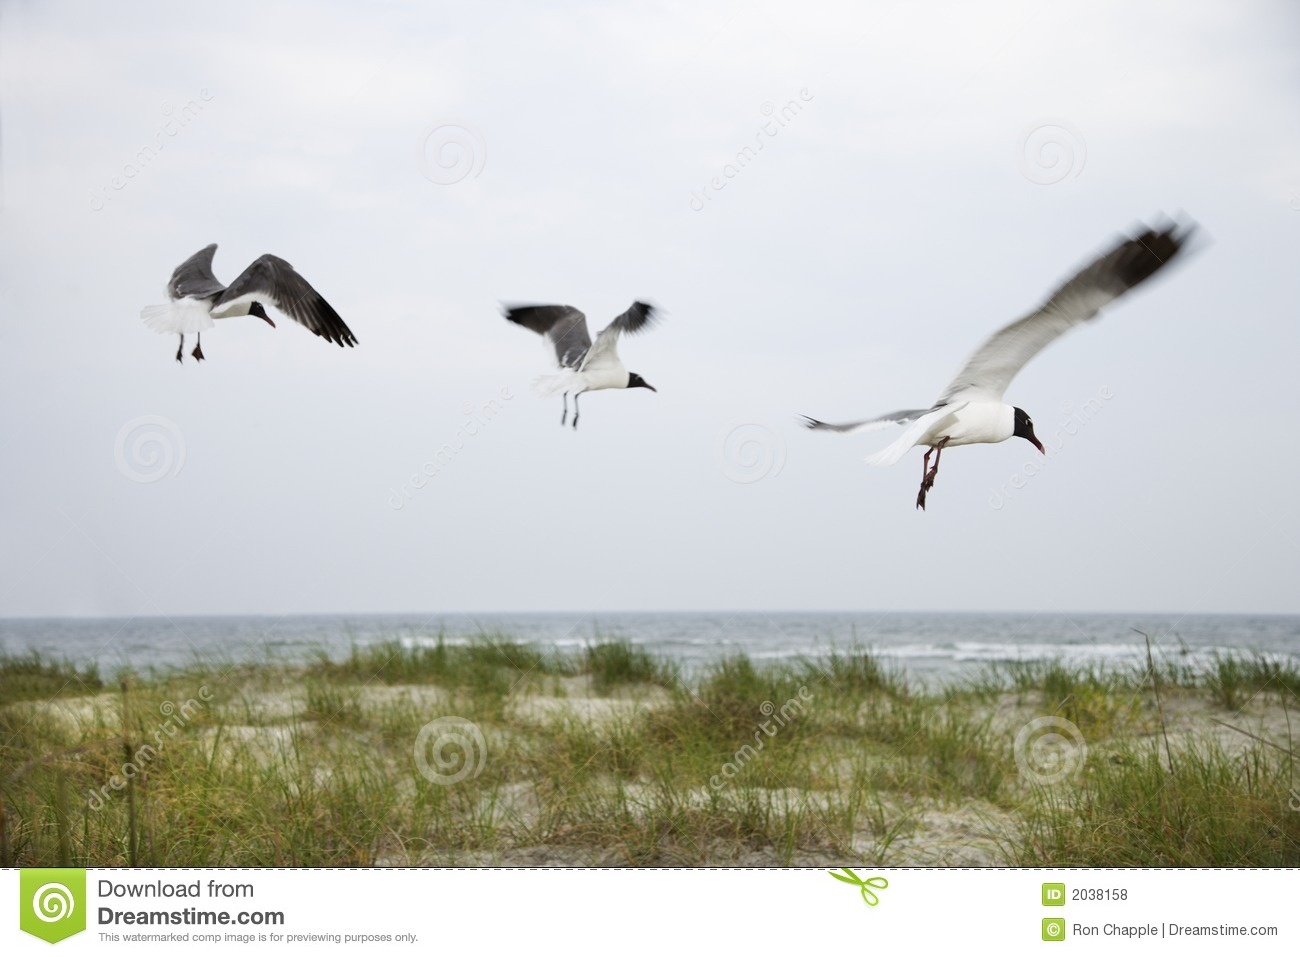 Three seagulls flying over beach.